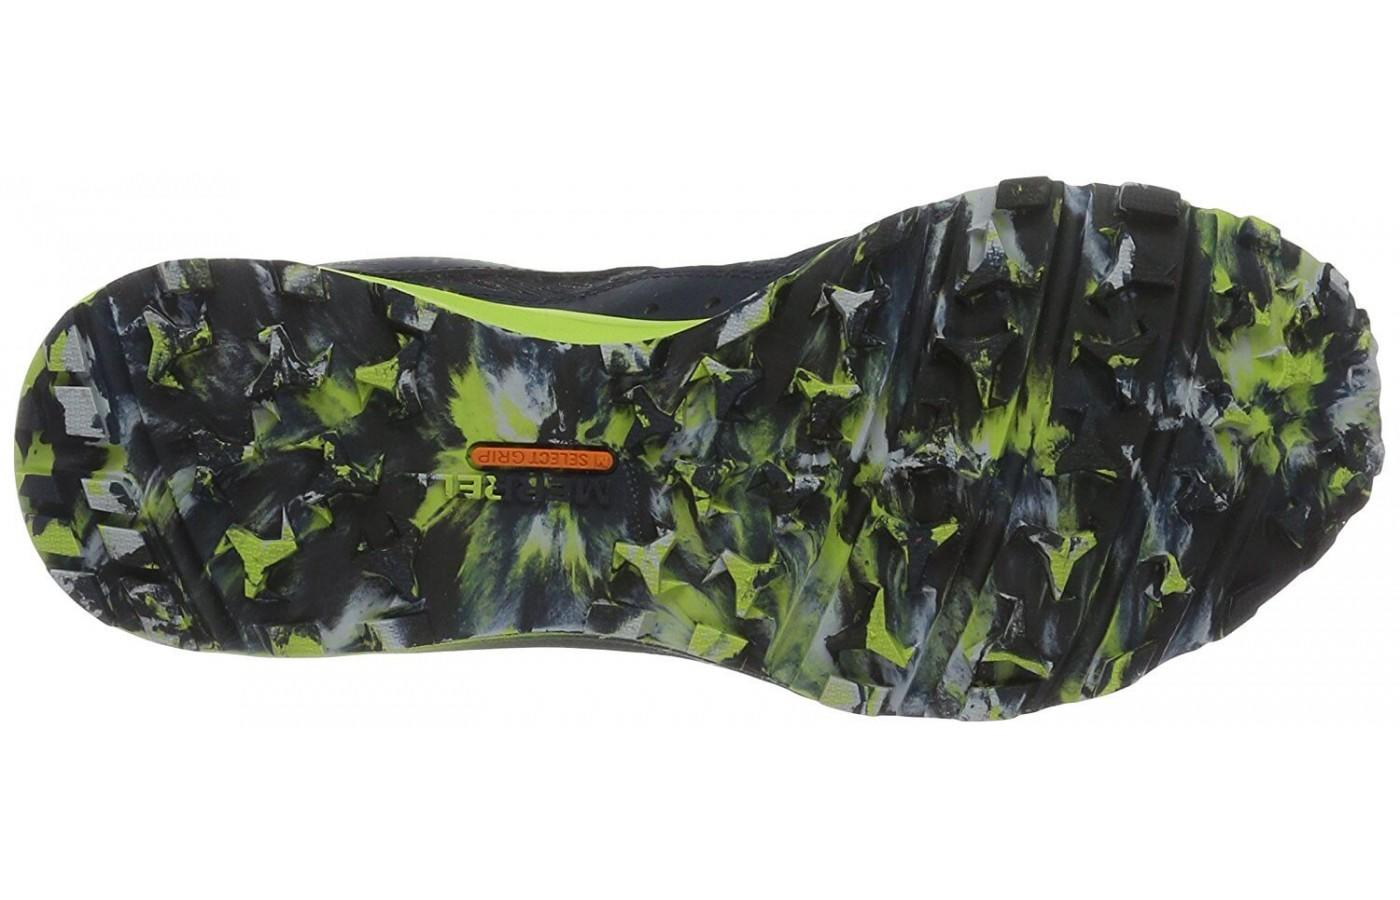 Merrell All Out Crush Tough Mudder has a durable outsole